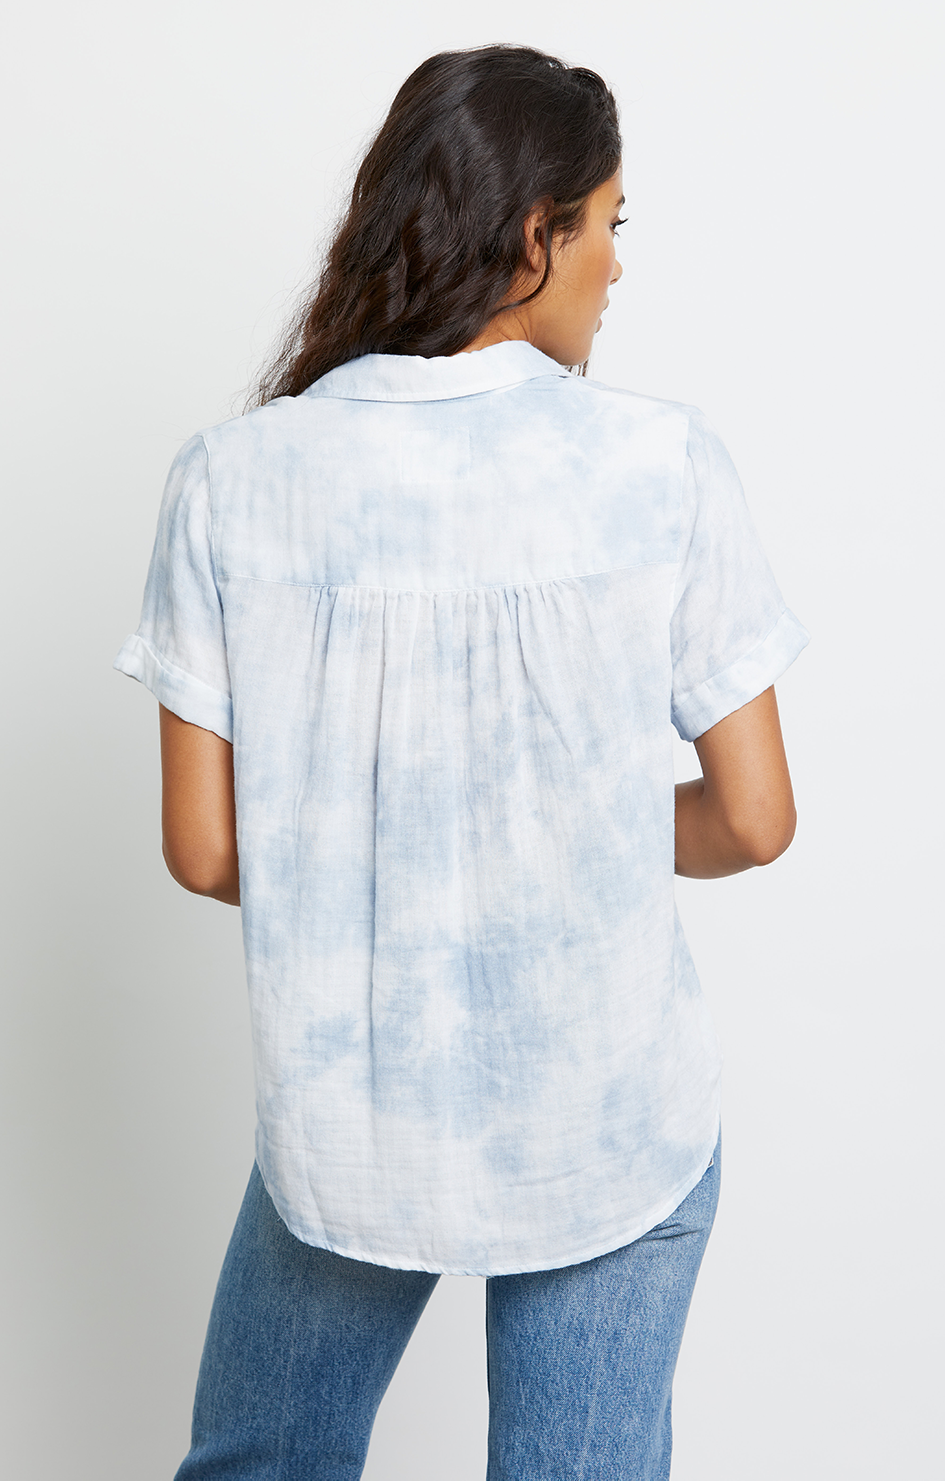 Savannah Top - Cascade Tie Dye